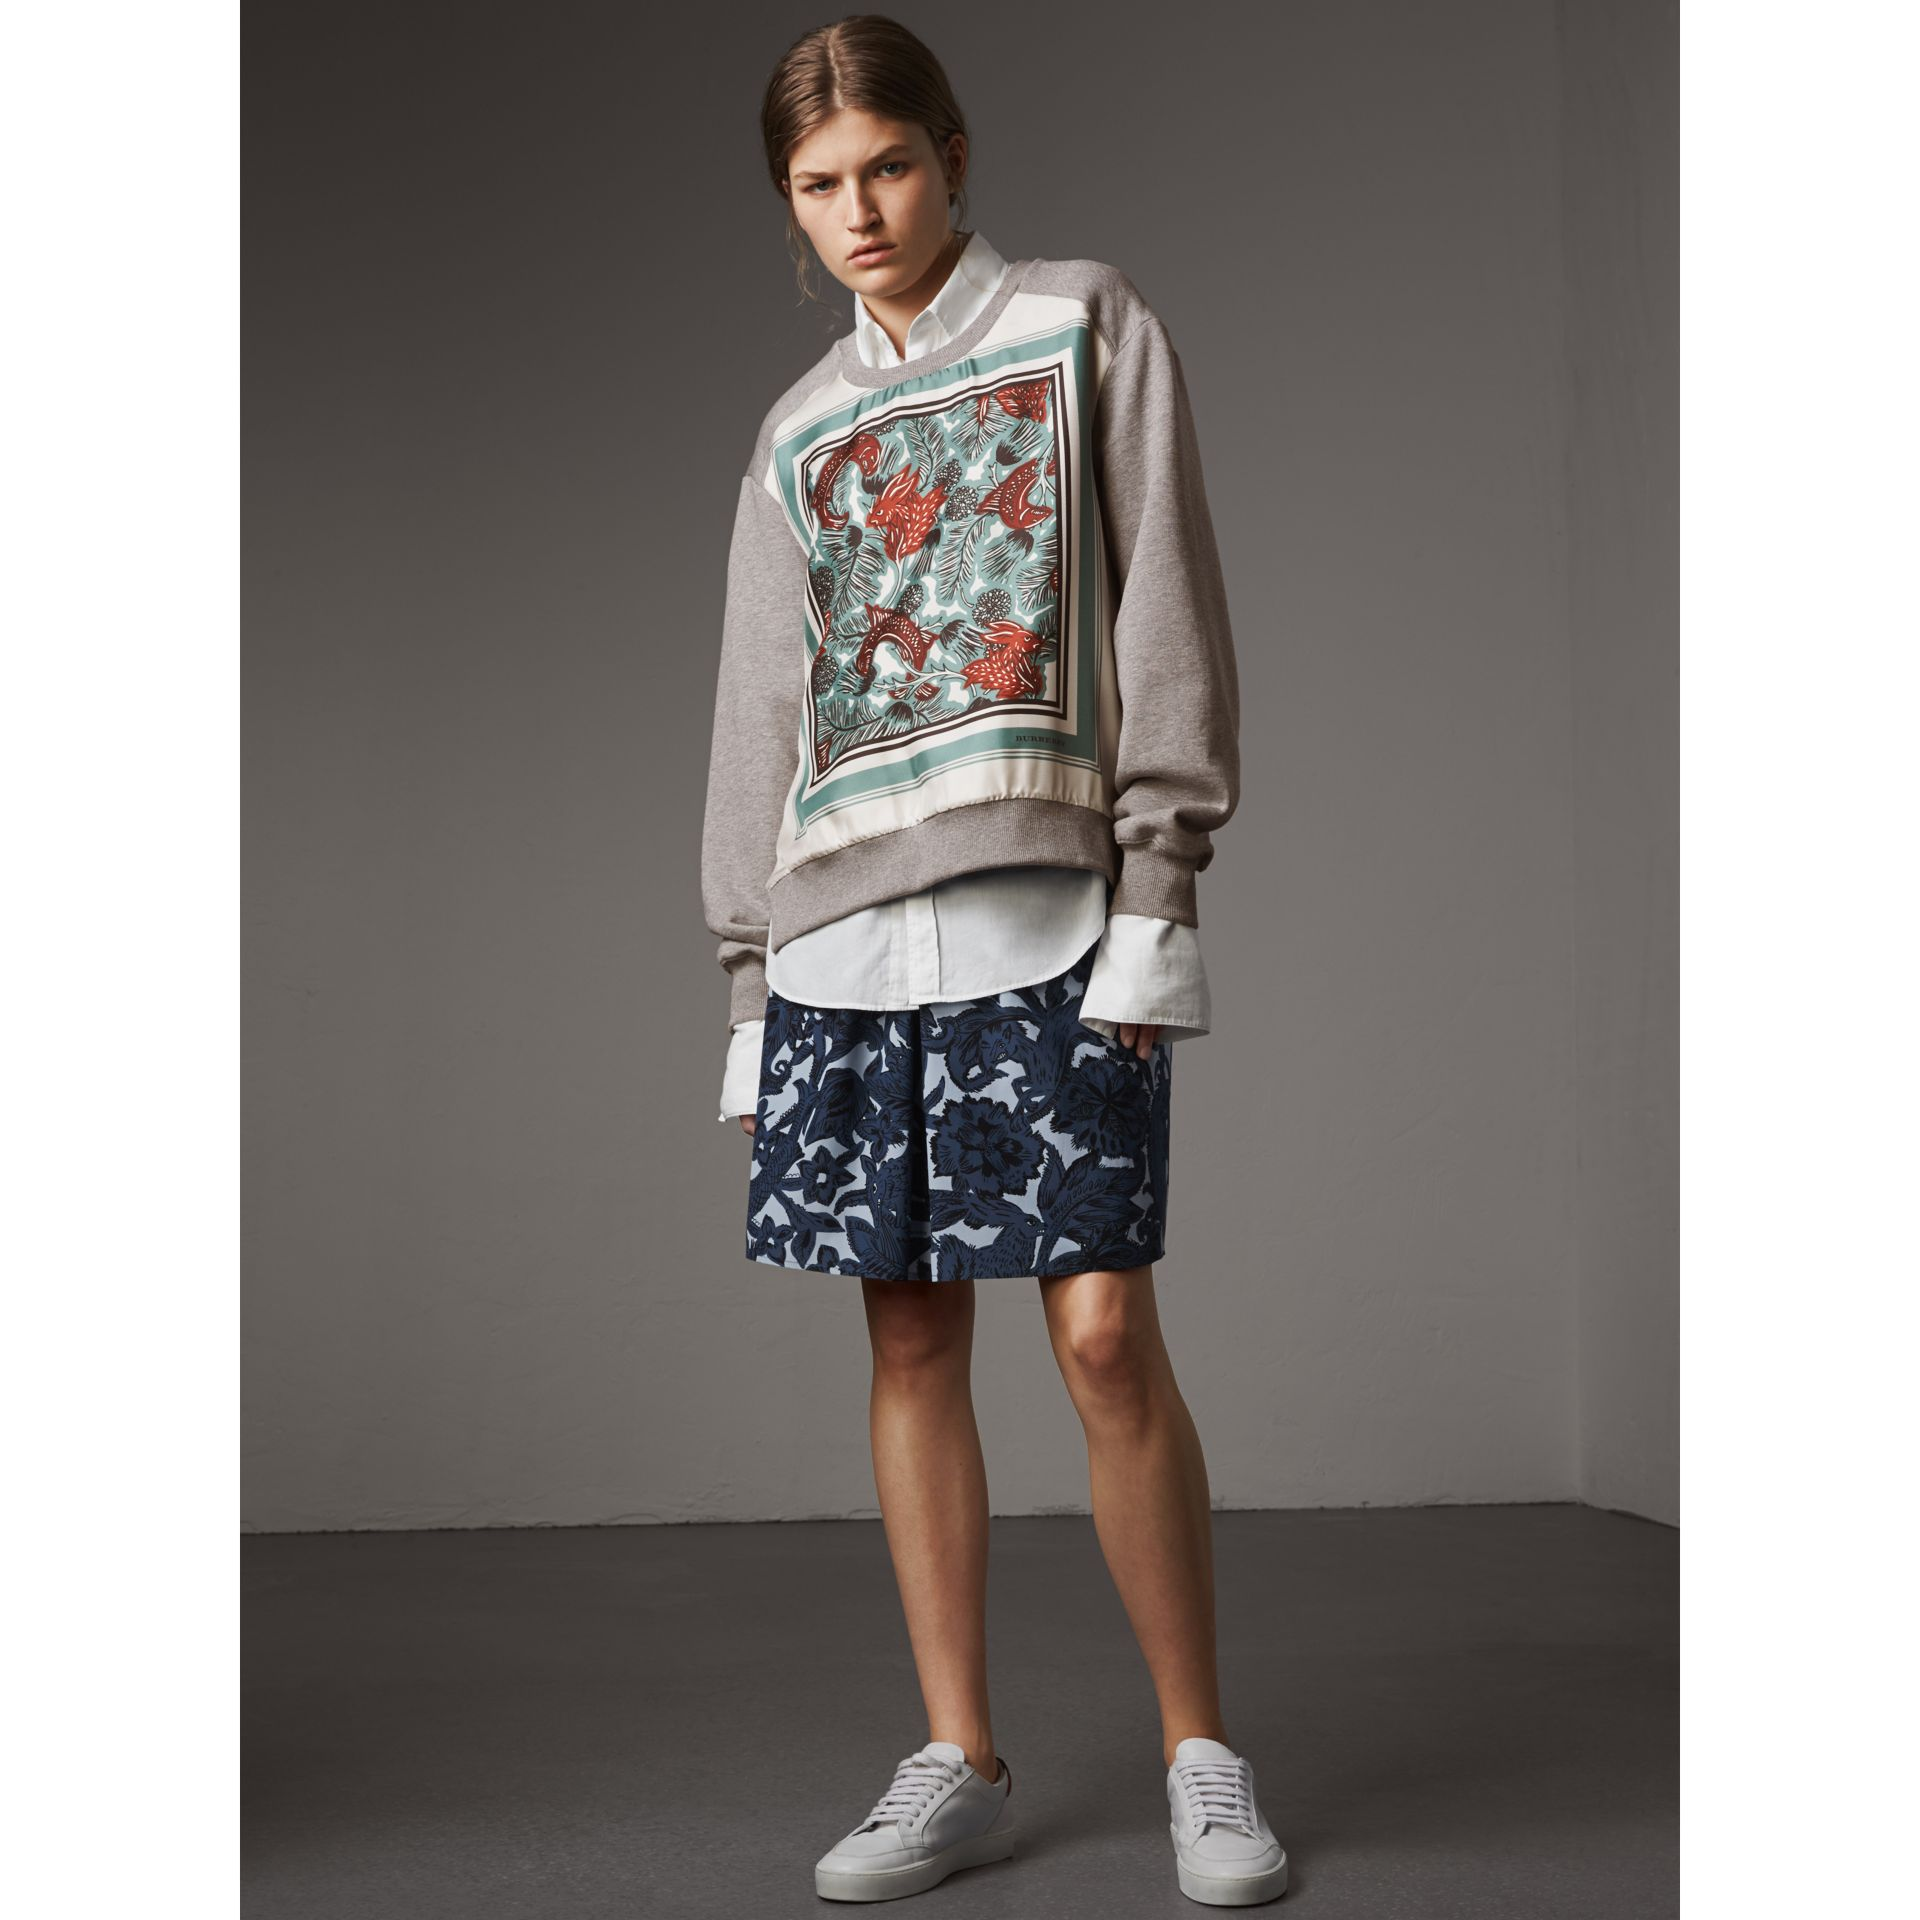 Beasts Print Silk Panel Jersey Sweatshirt in Pale Grey Melange - Women | Burberry - gallery image 5